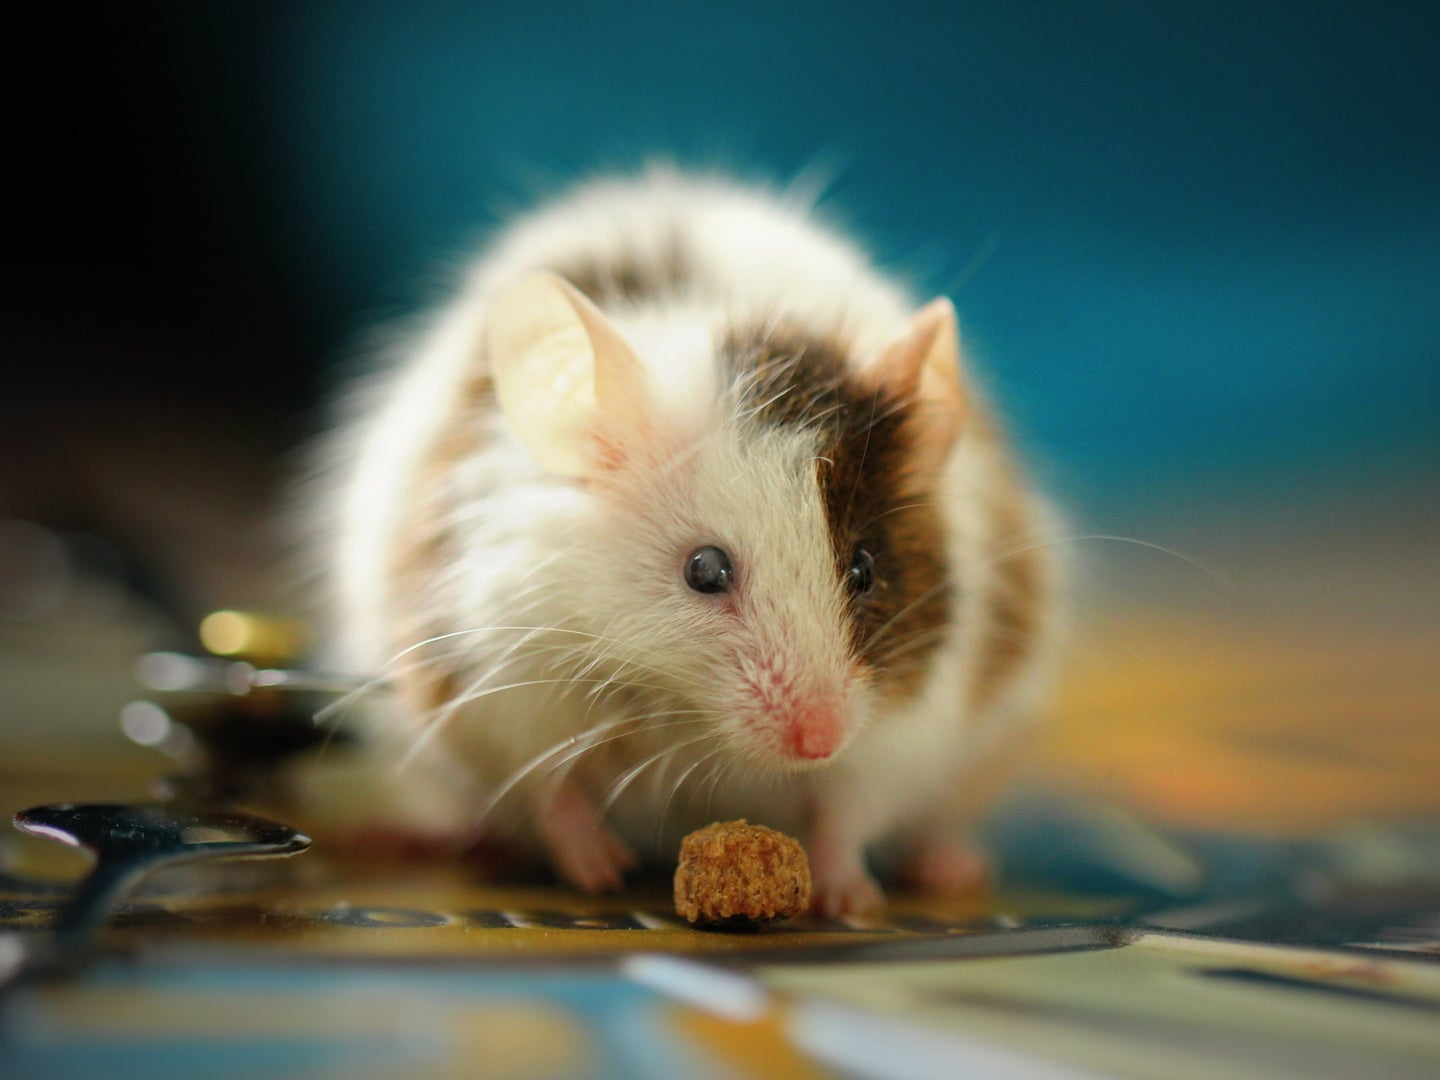 A mouse eating a morsel of food, a scene that would prompt many to wonder how to get rid of mice.